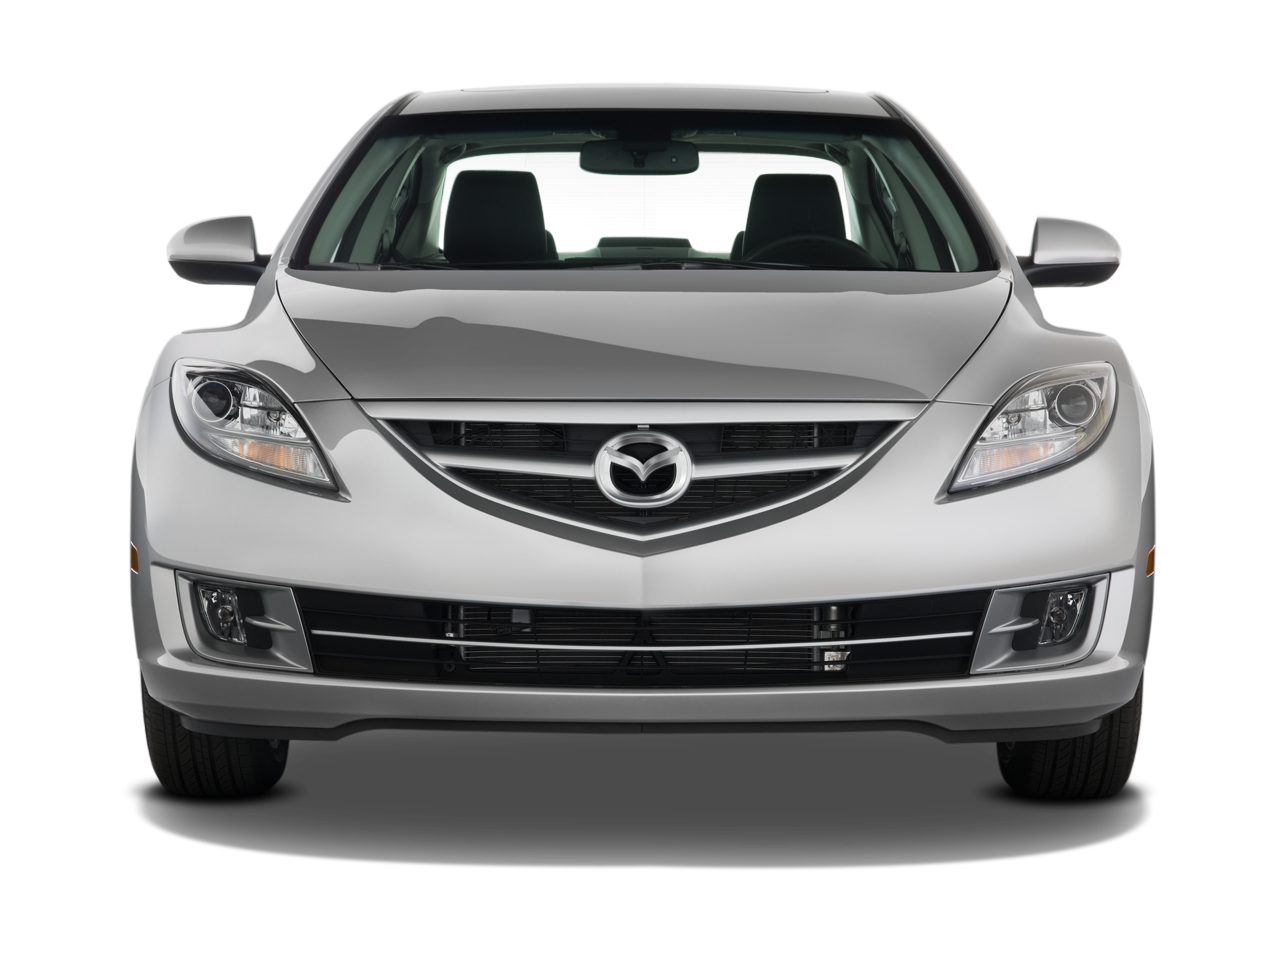 2009 mazda 6 latest news features and reviews. Black Bedroom Furniture Sets. Home Design Ideas